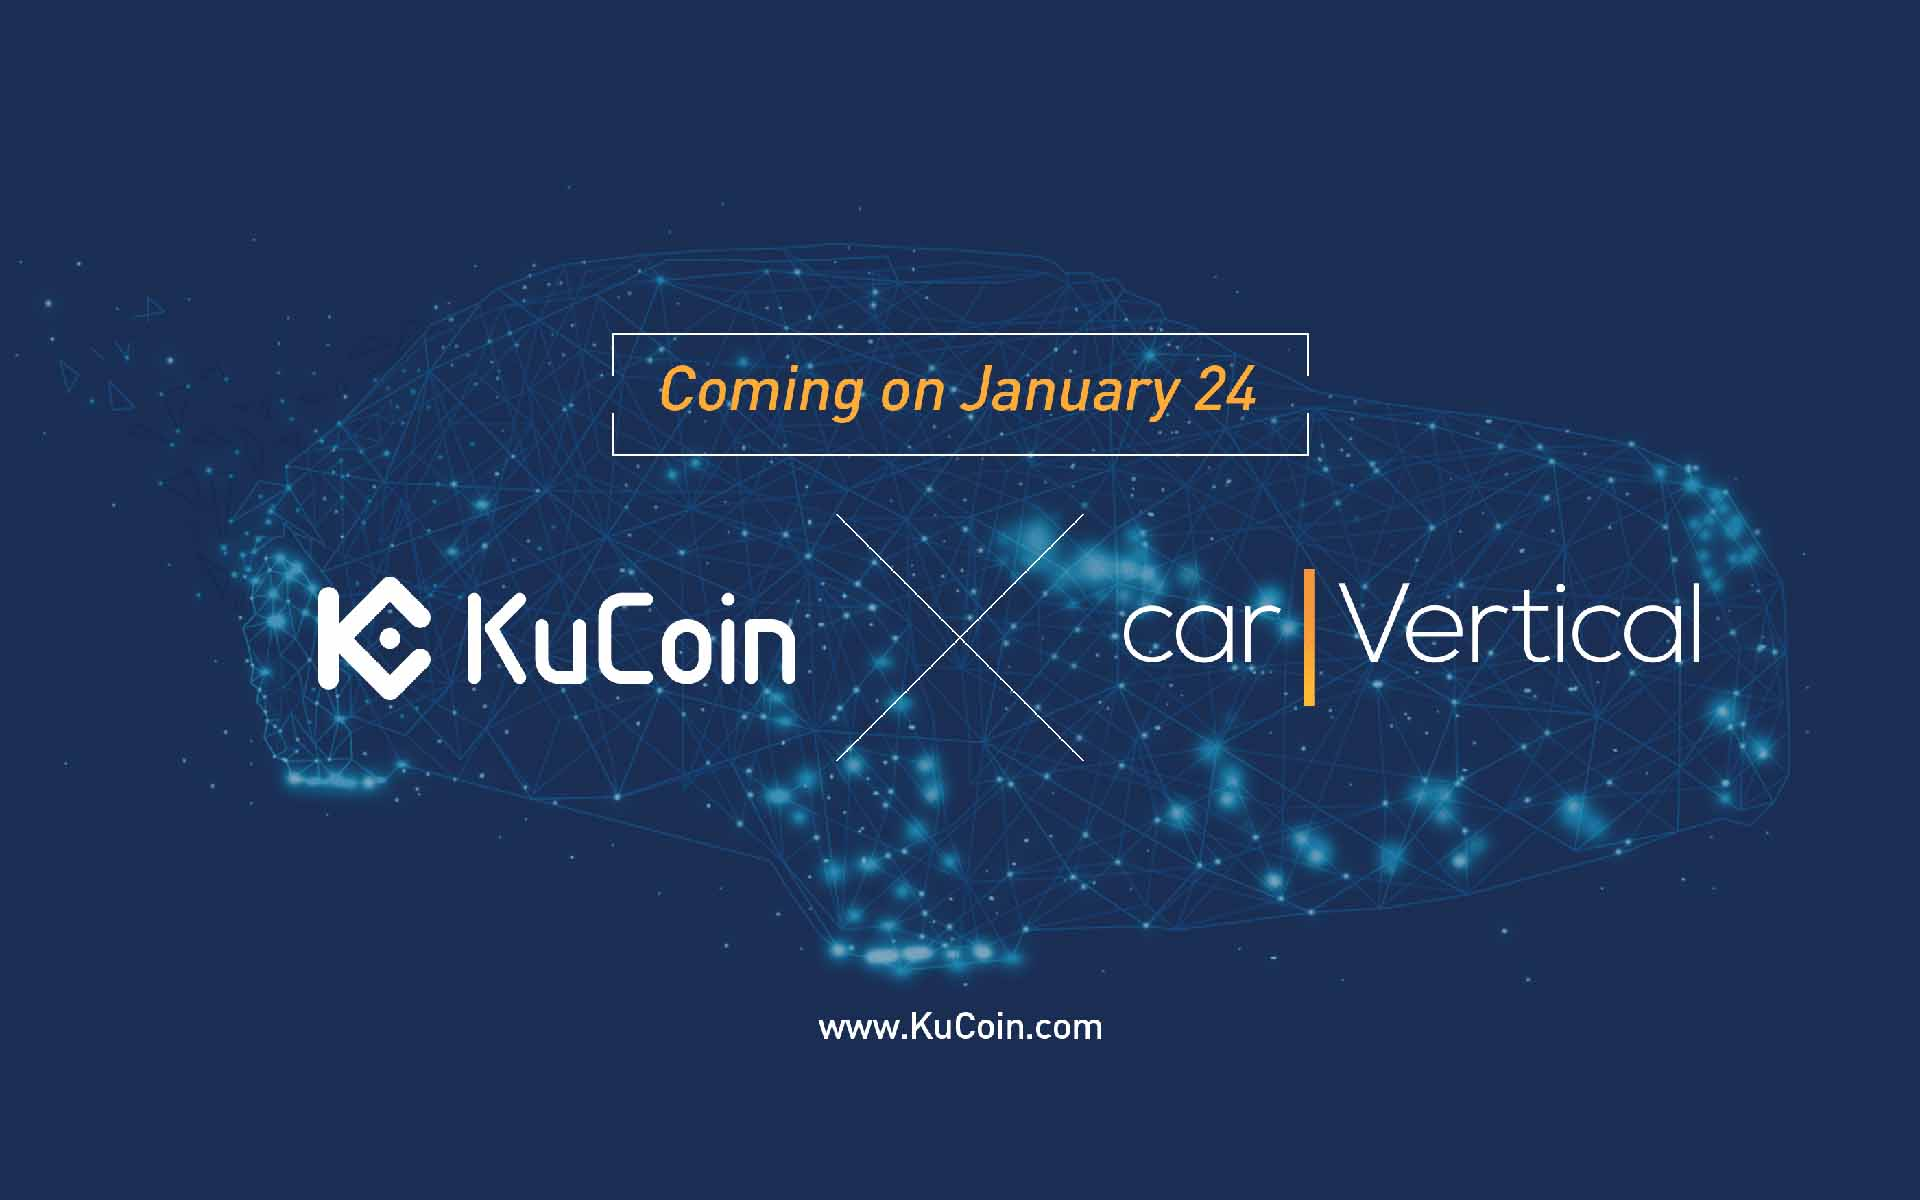 Tesla Model S As Prize For carVertical listing on KuCoin